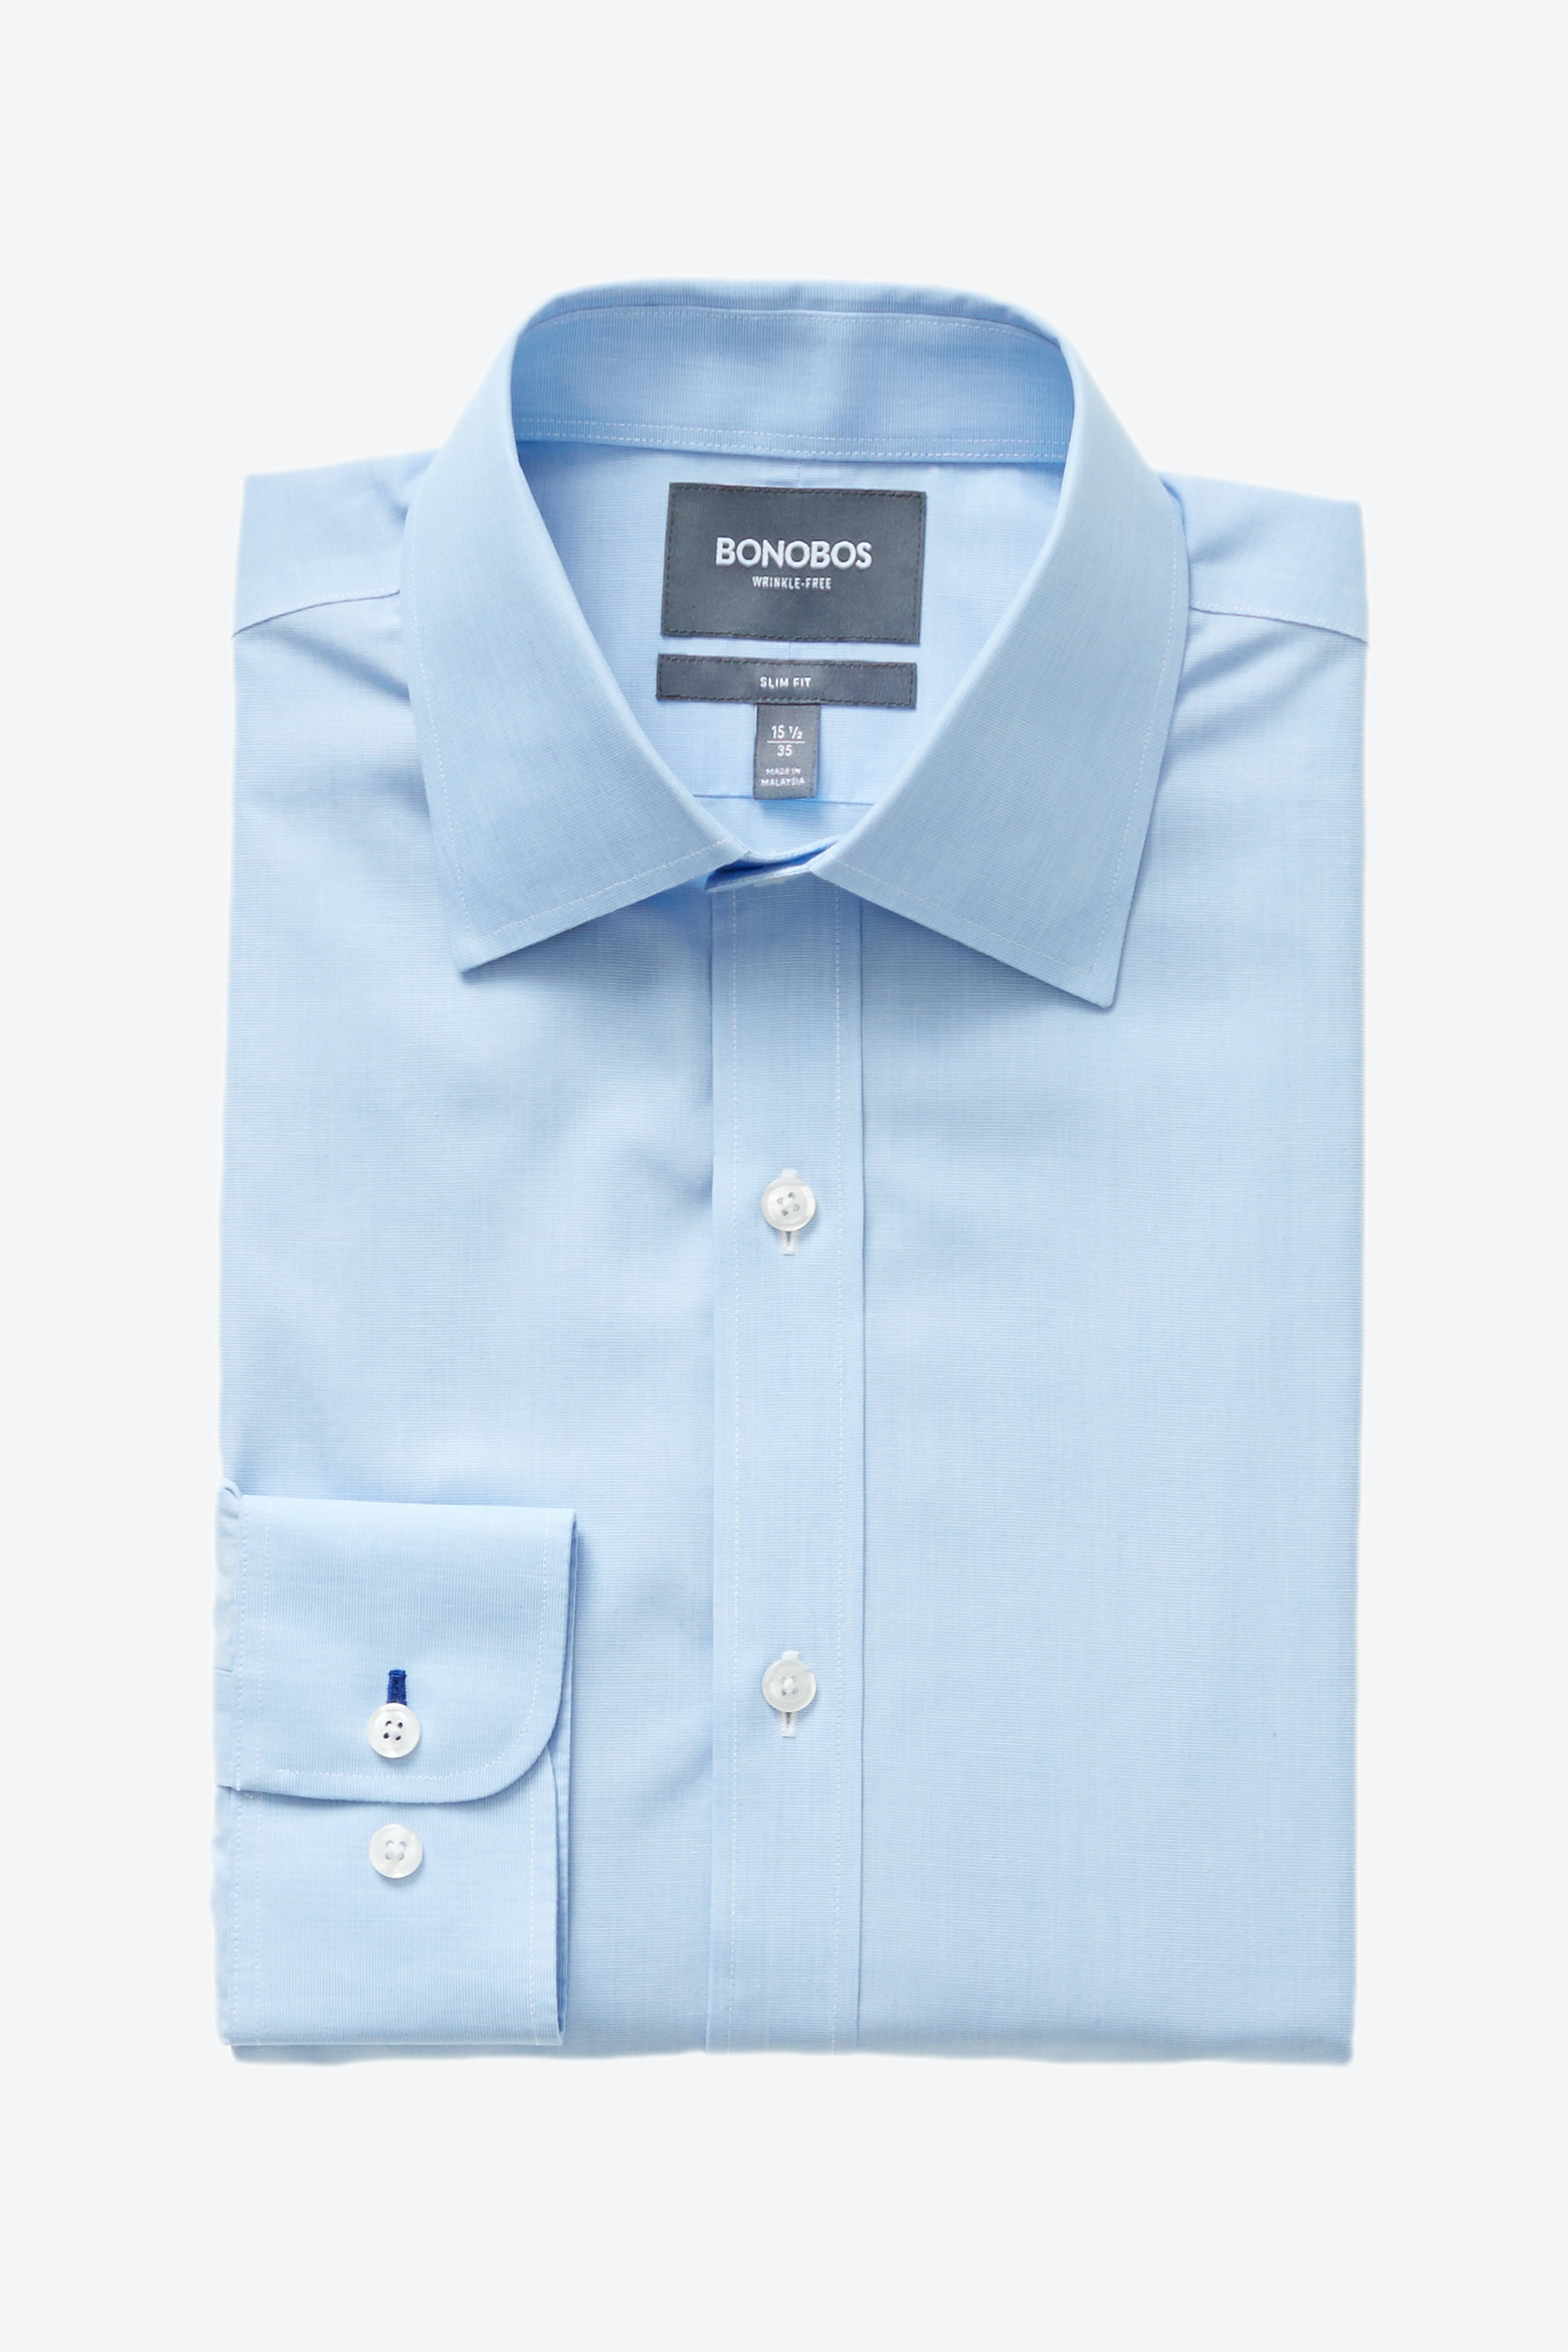 Daily Grind Wrinkle Free Dress Shirt Extended Sizes